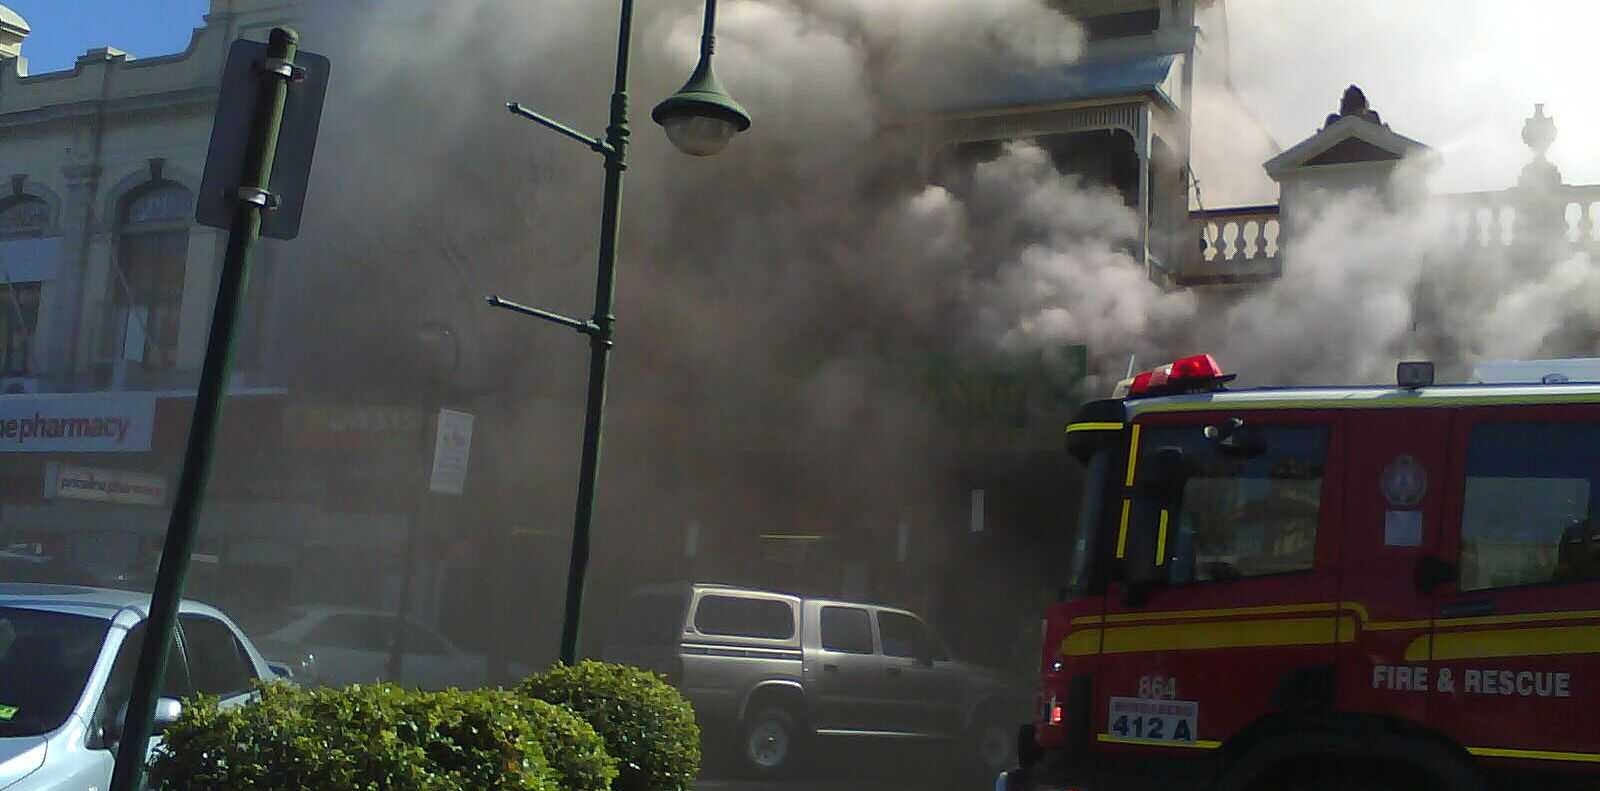 Bourbong Street in chaos as fire threatens a number of businesses.